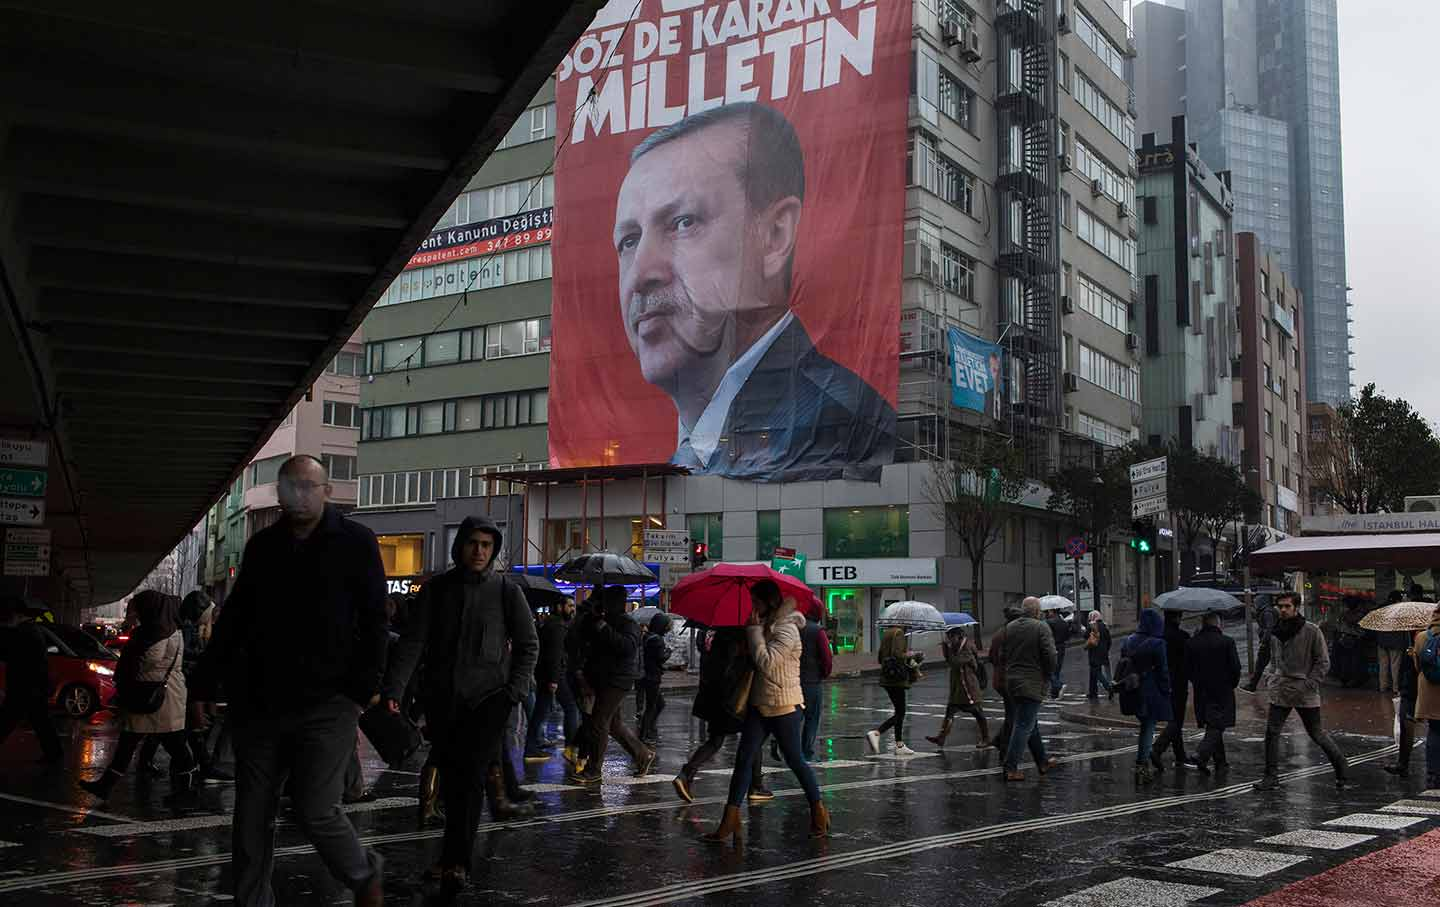 A campaign banner for the Turkish referendum